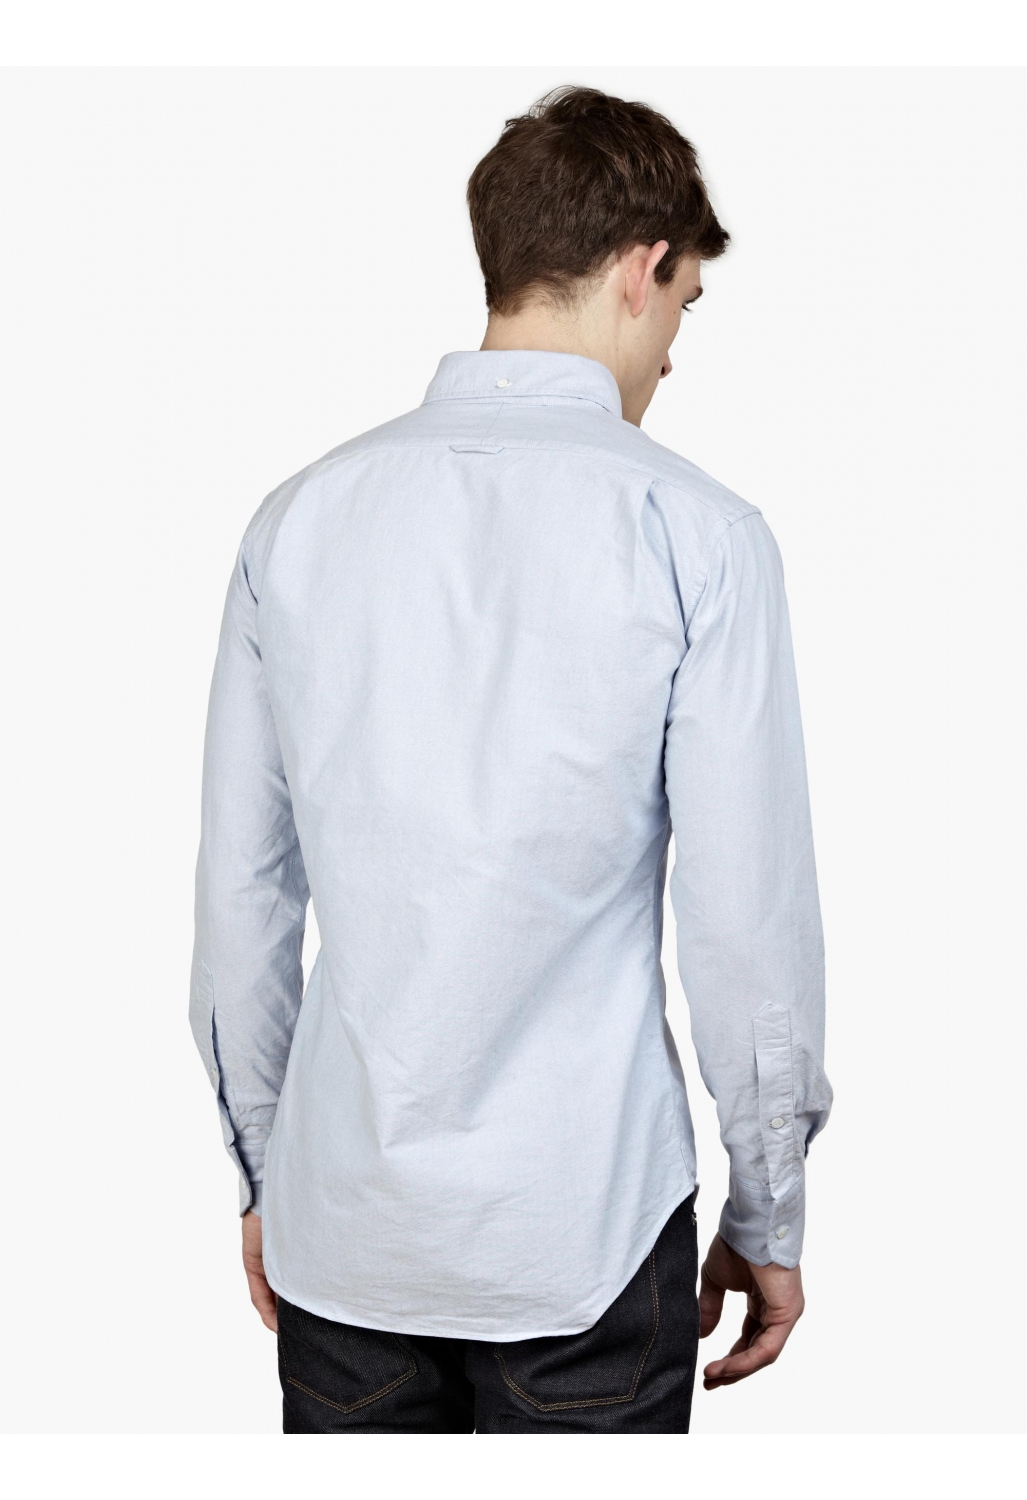 Thom browne men s blue cotton oxford shirt in blue for men for Mens blue oxford shirt